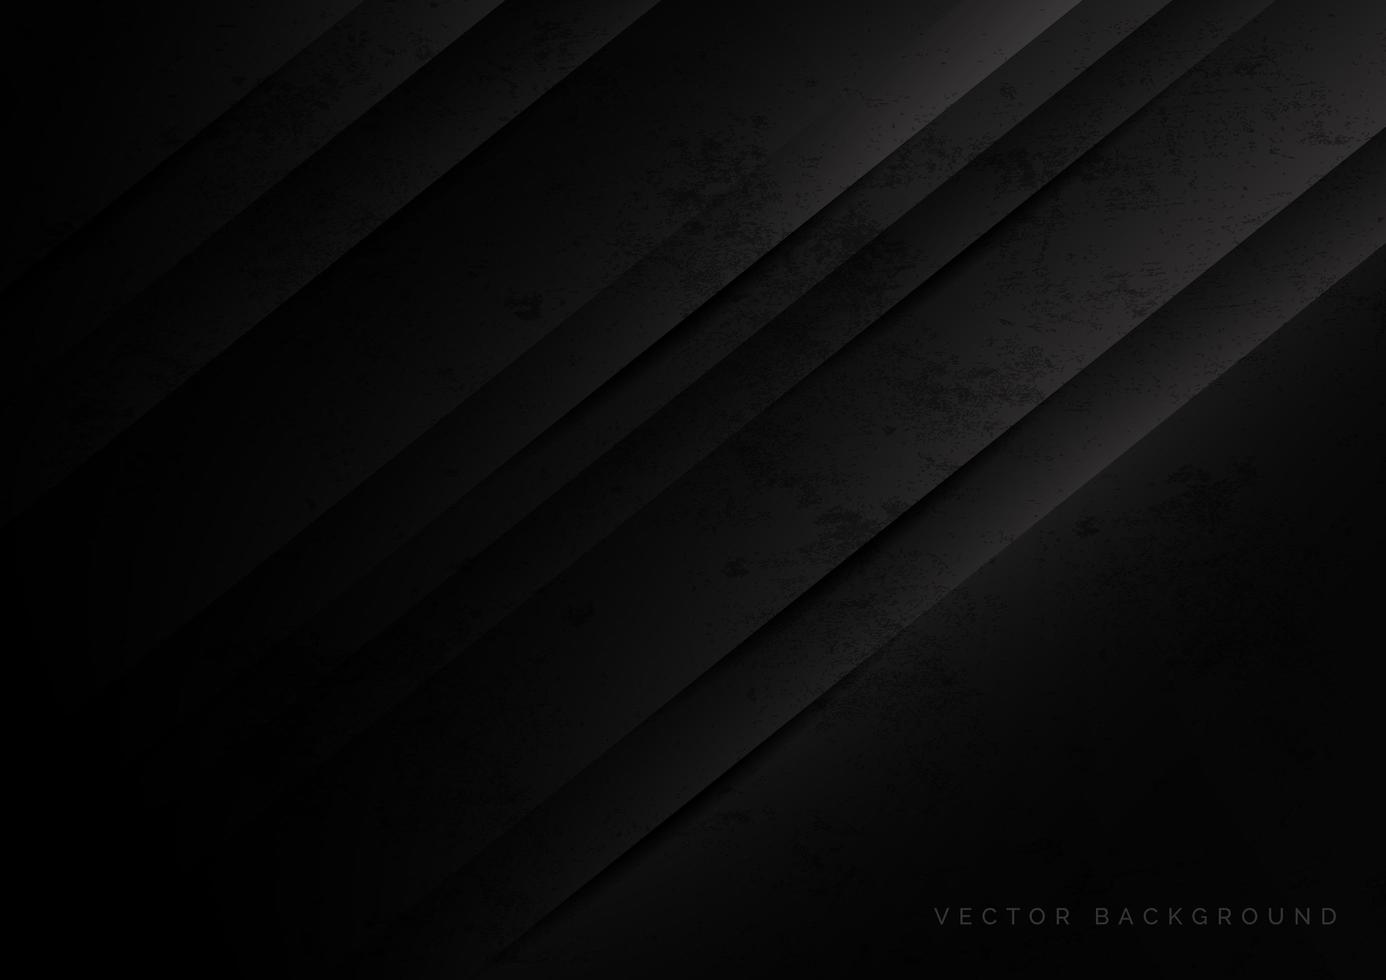 Abstract modern shape black gradient geometric stripes diagonal background with grunge texture. vector